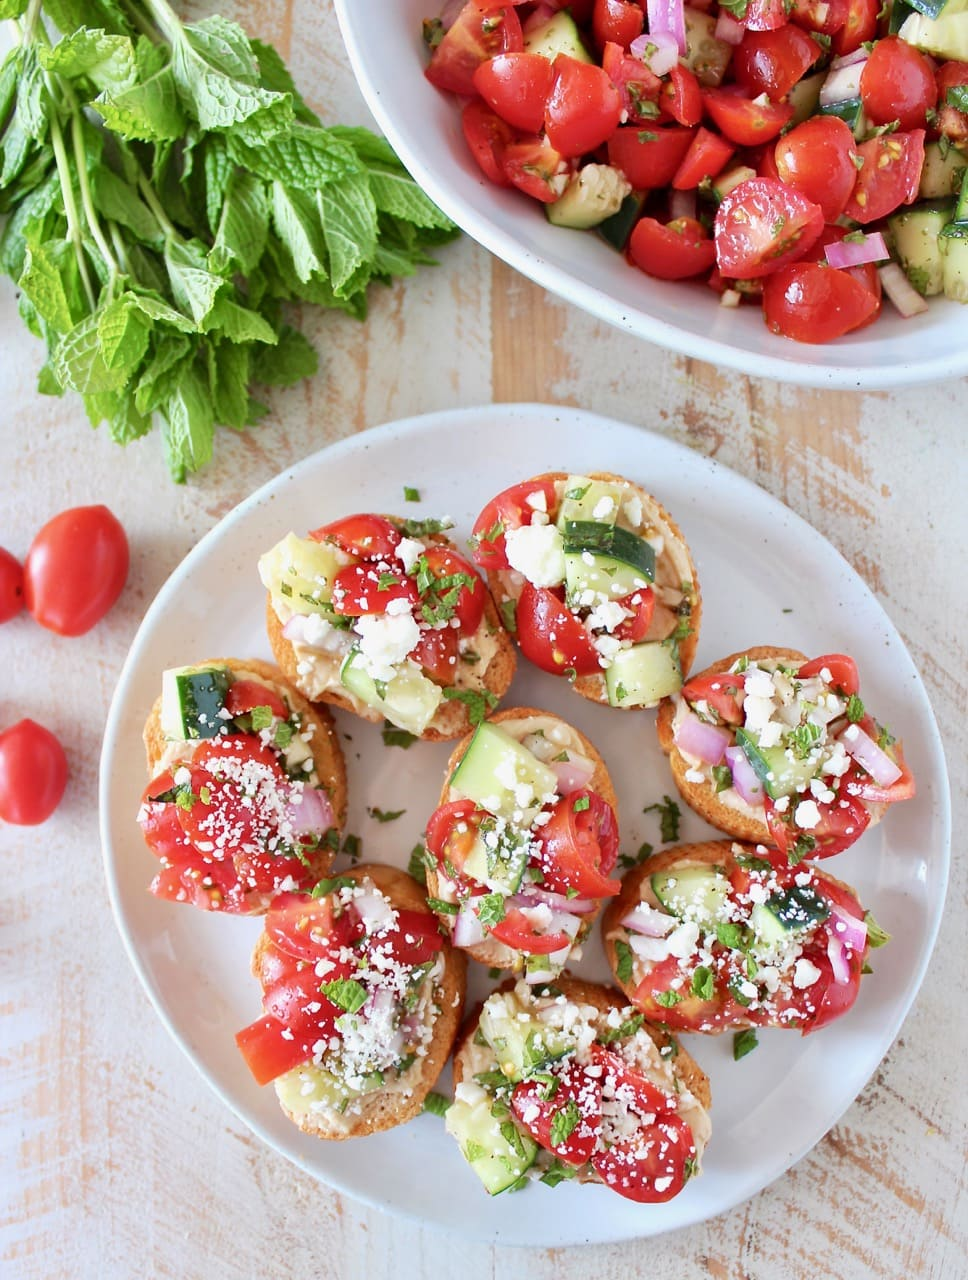 Tomato Cucumber Greek Bruschetta on Toasted Bread, topped with Garlic Hummus and Feta Cheese